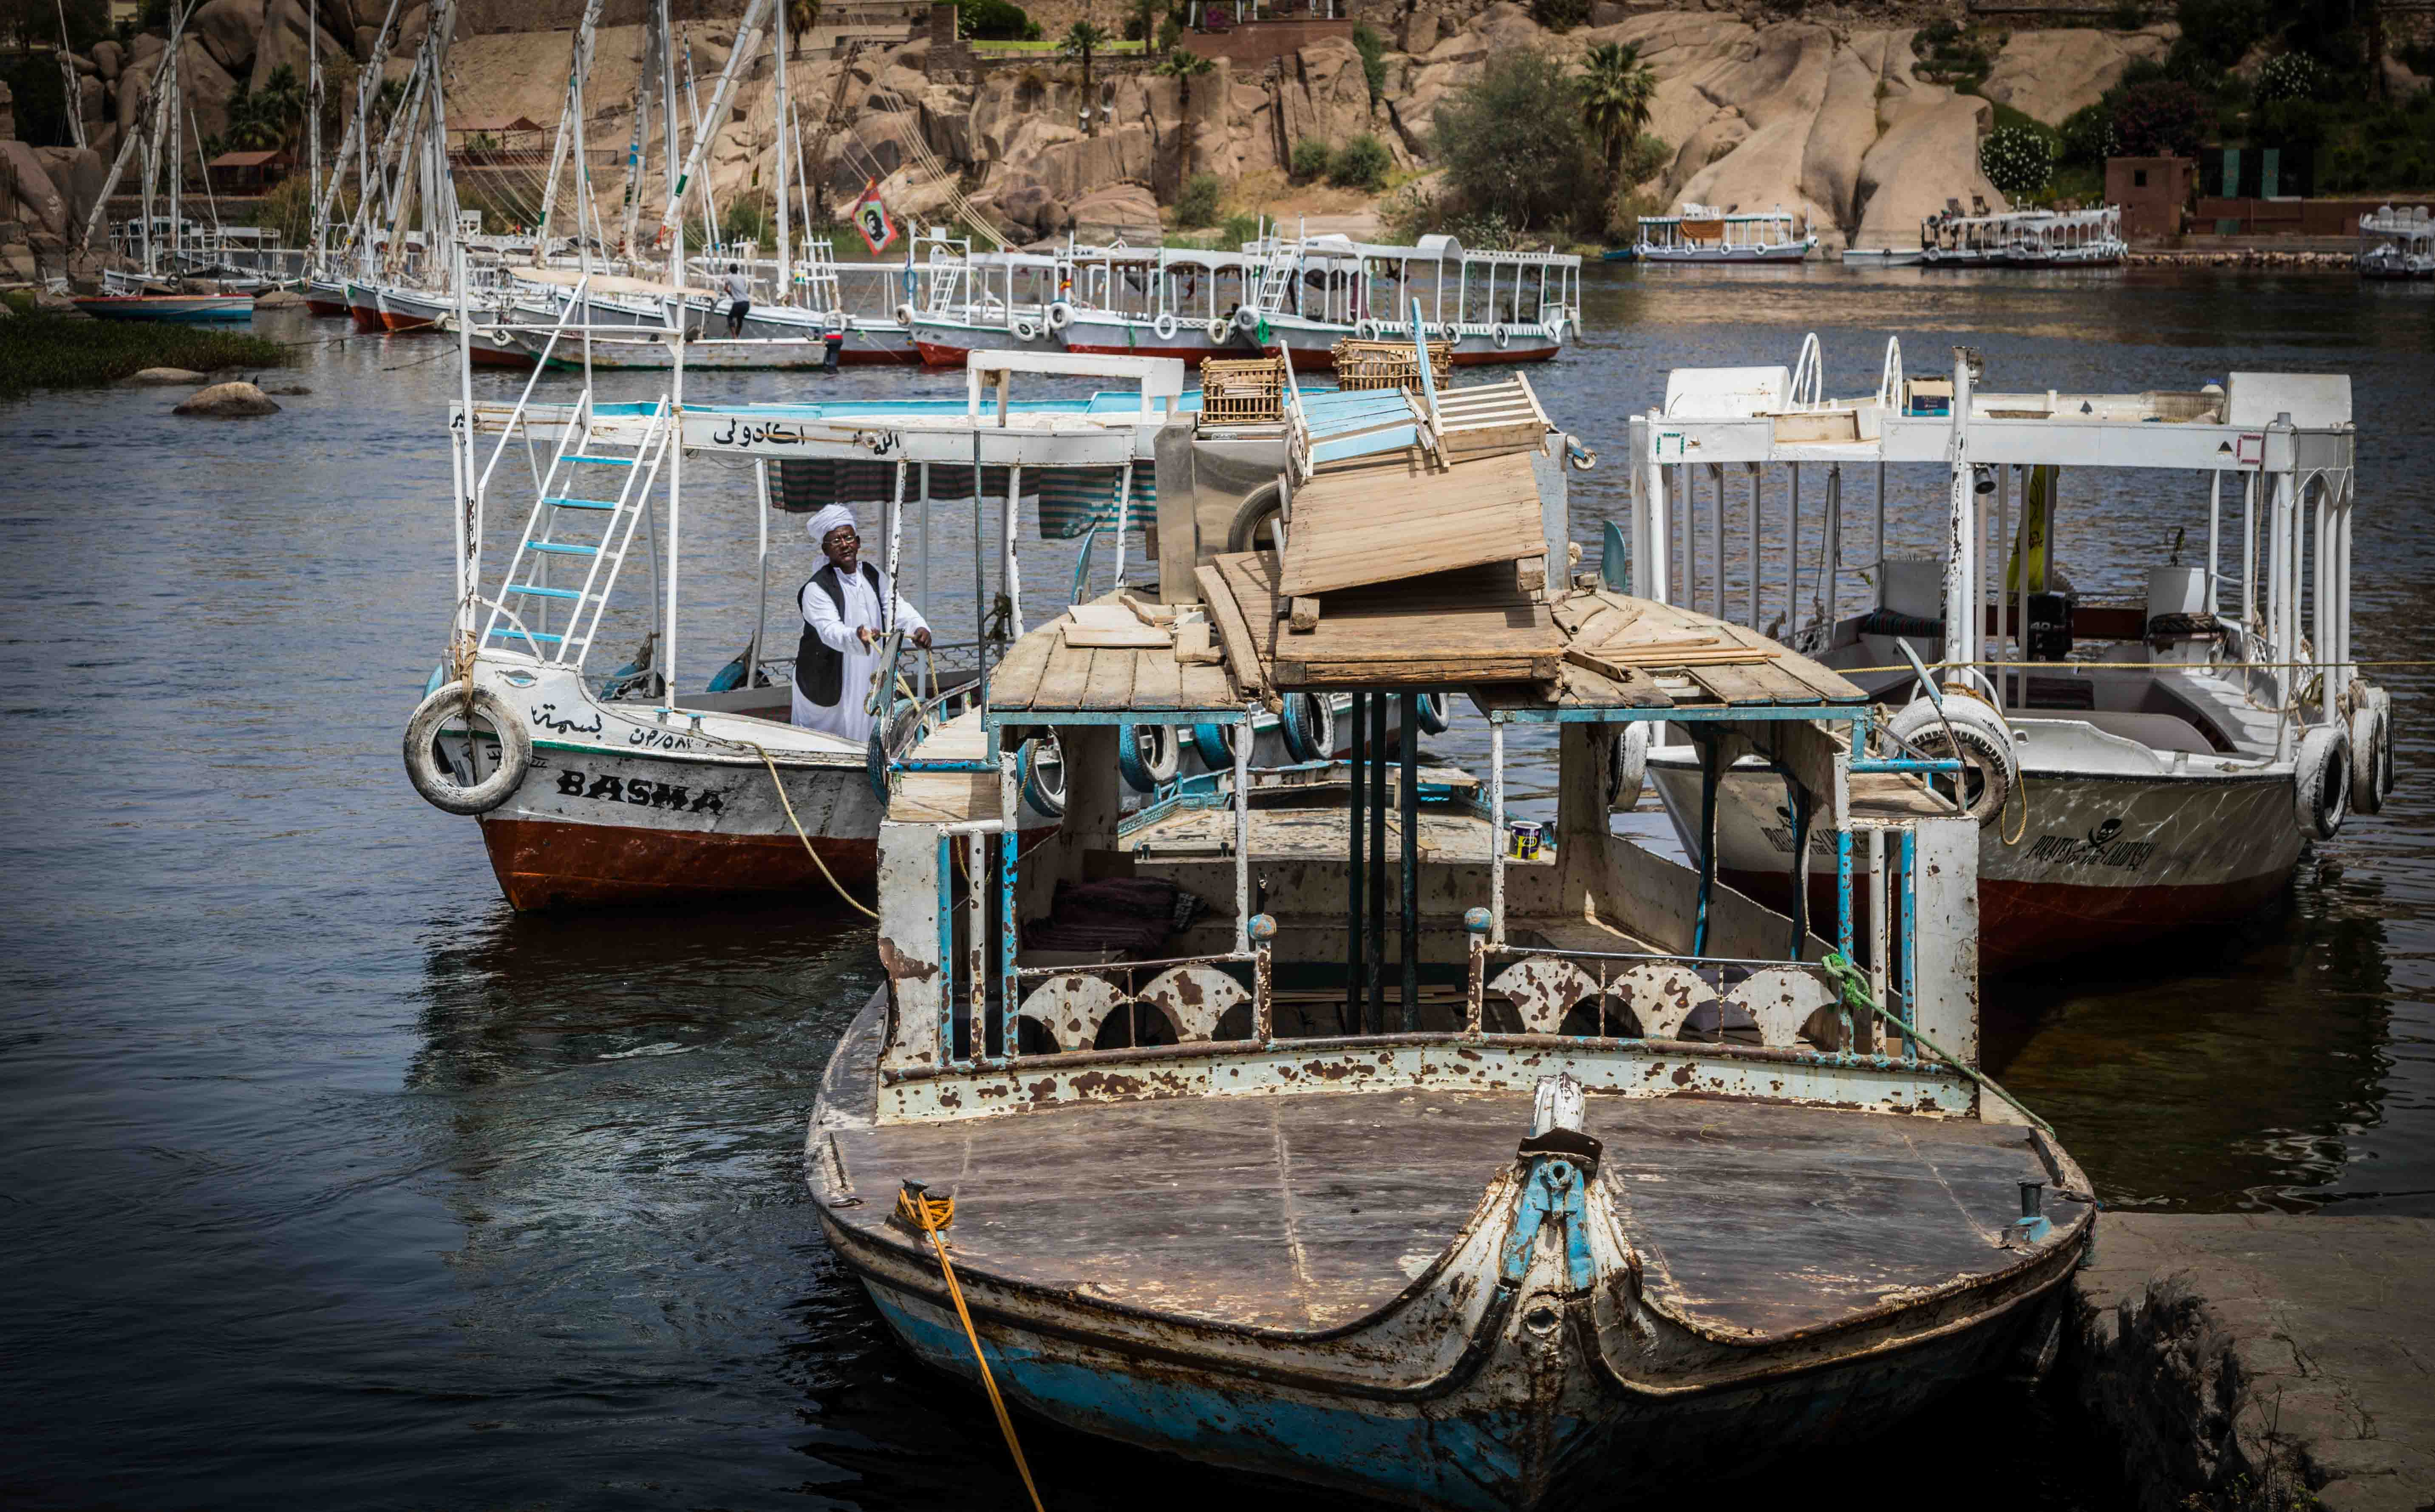 boats, Aswan cataracts